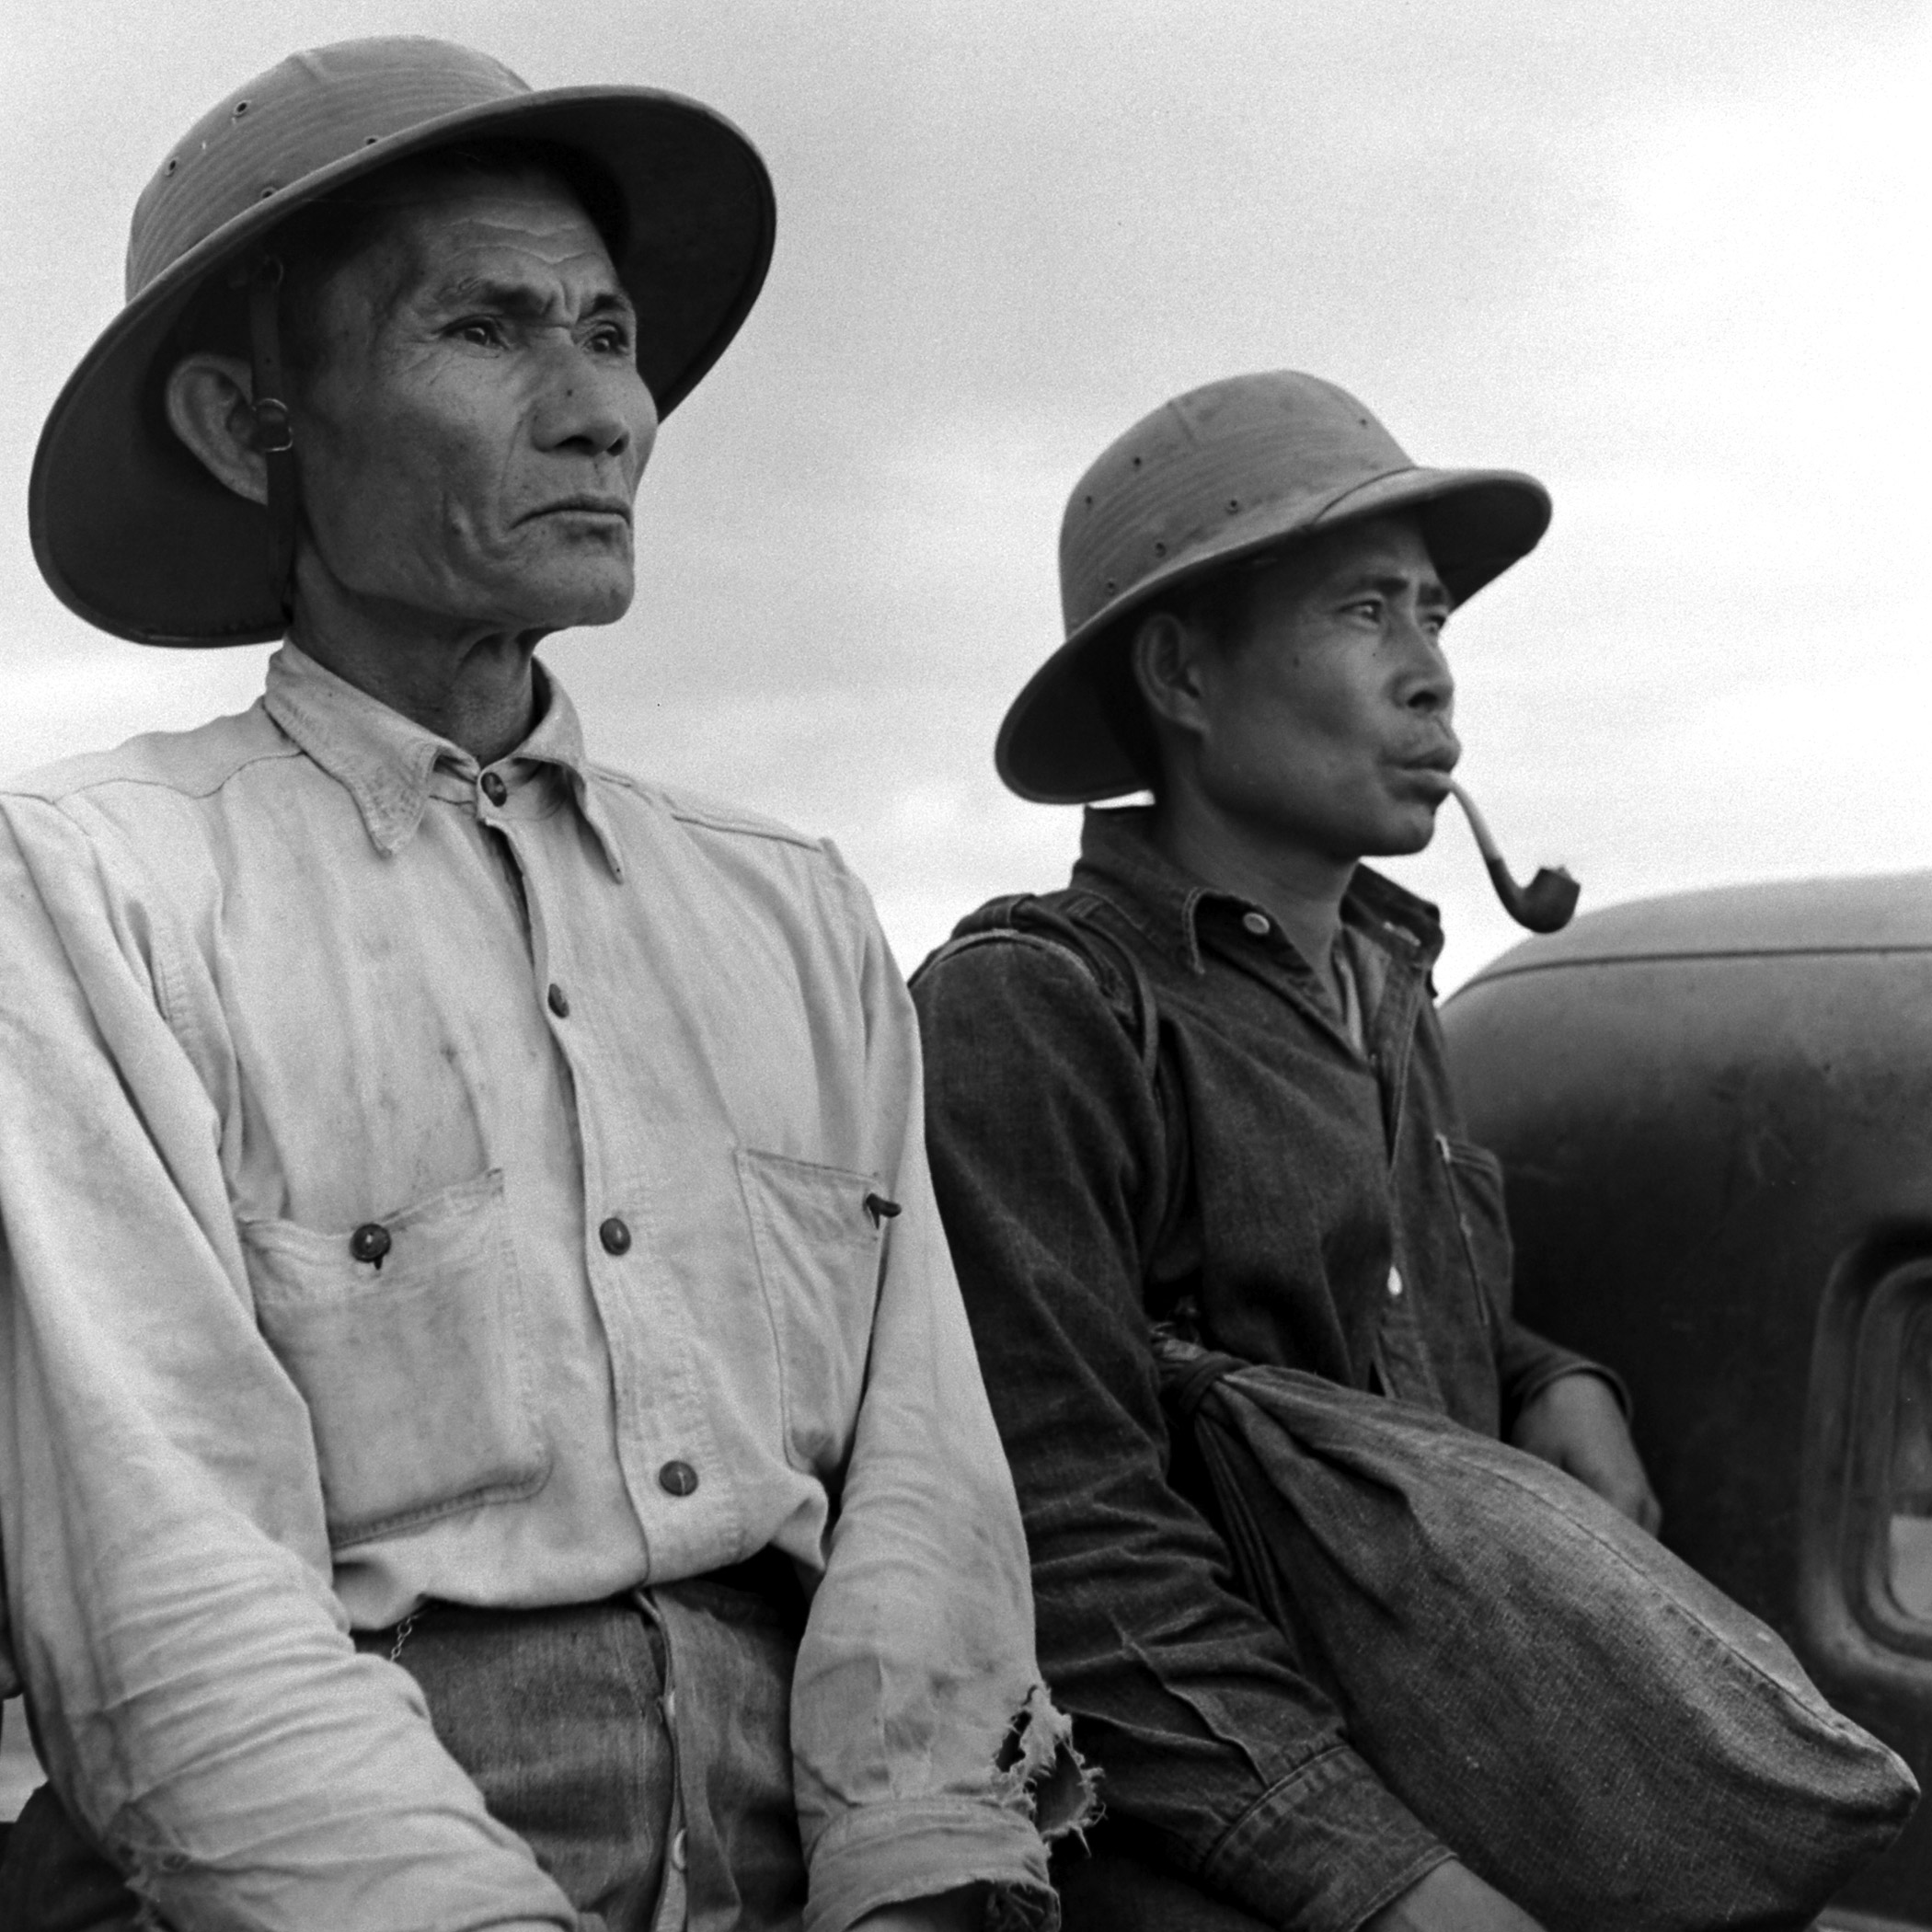 A portrait of two farmers in Hawaii.